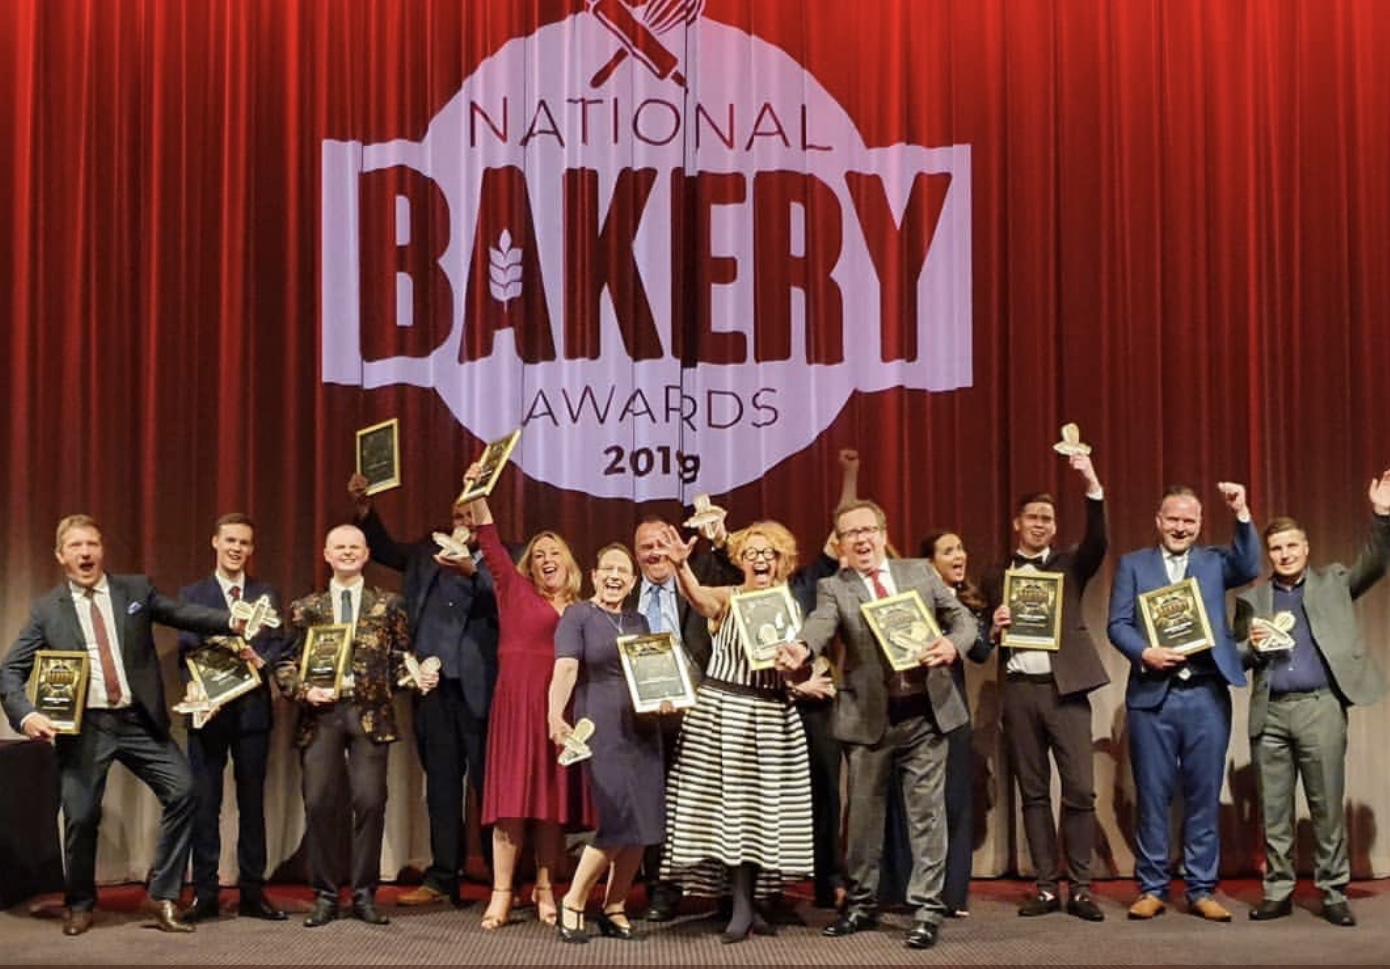 National Bakery Awards winners announced!